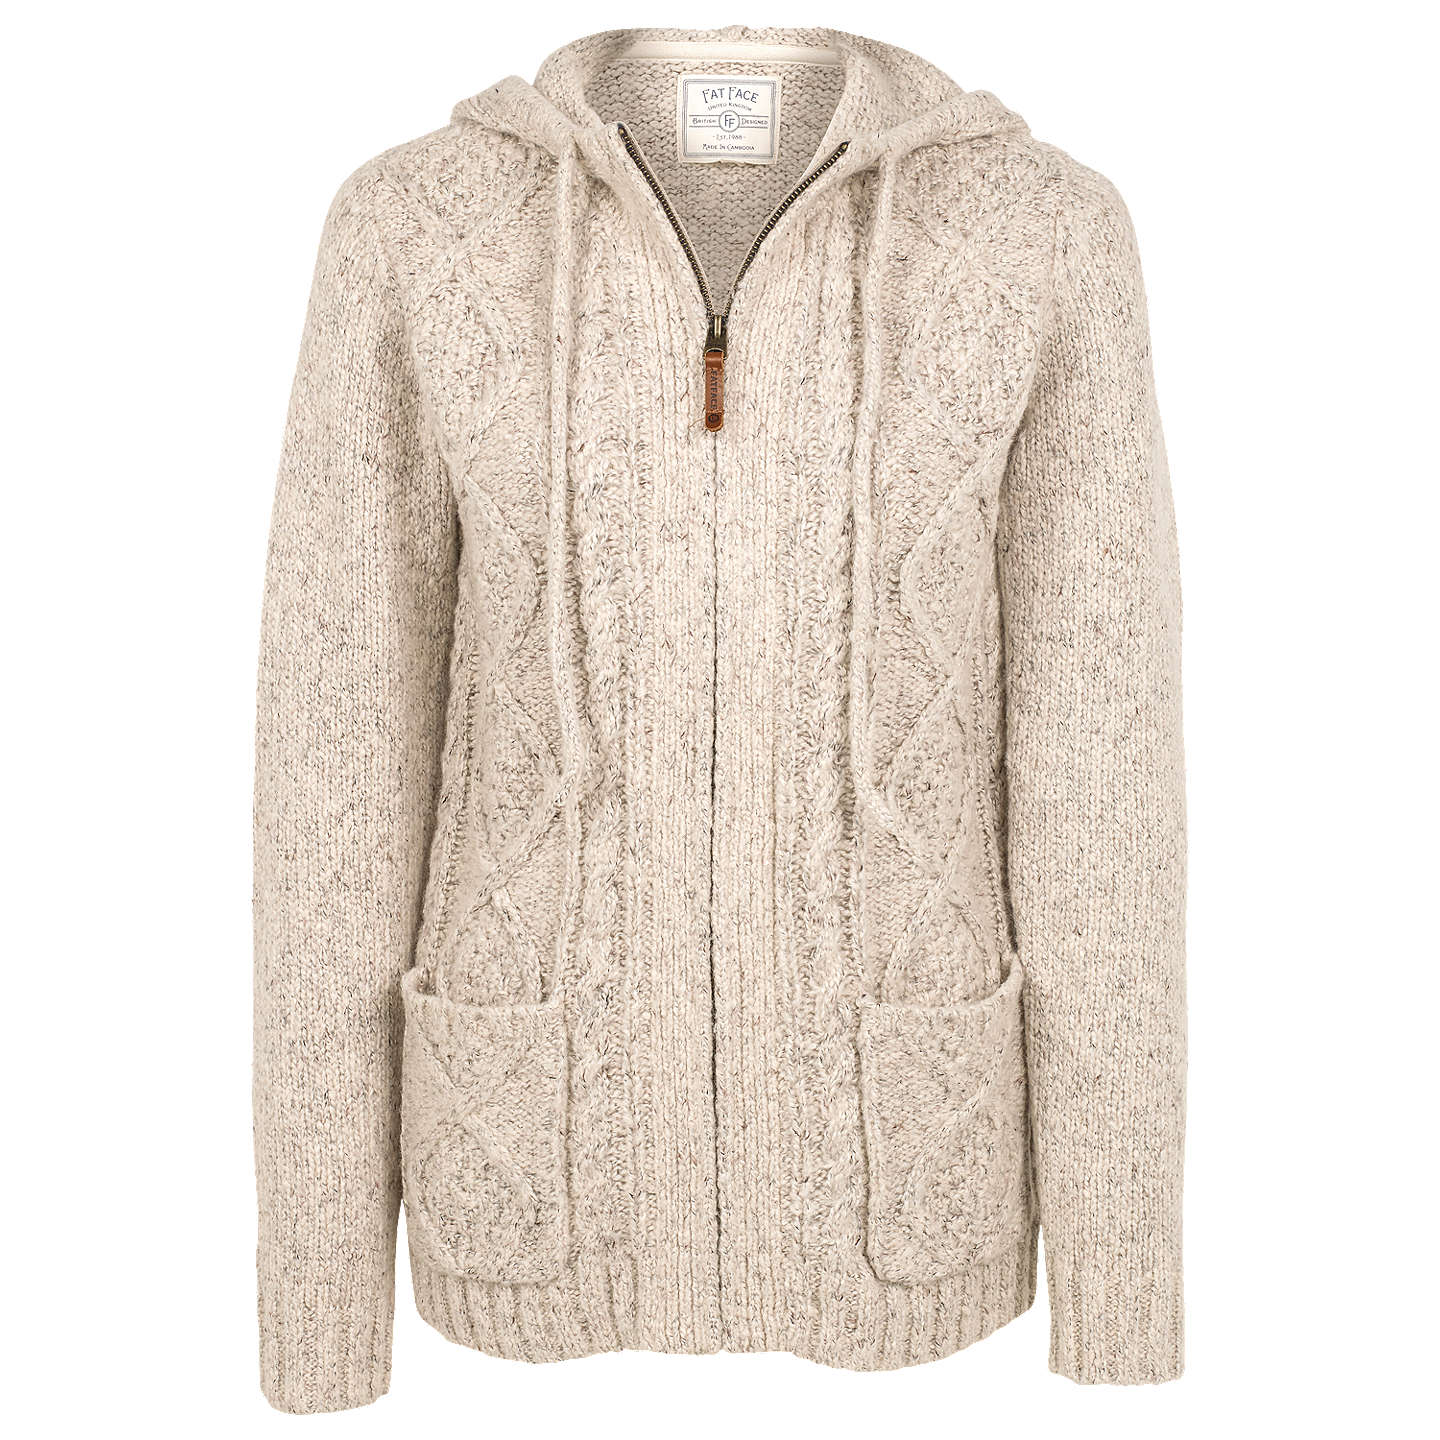 BuyFat Face Alicia Knit Hoodie, Ivory, 12 Online at johnlewis.com